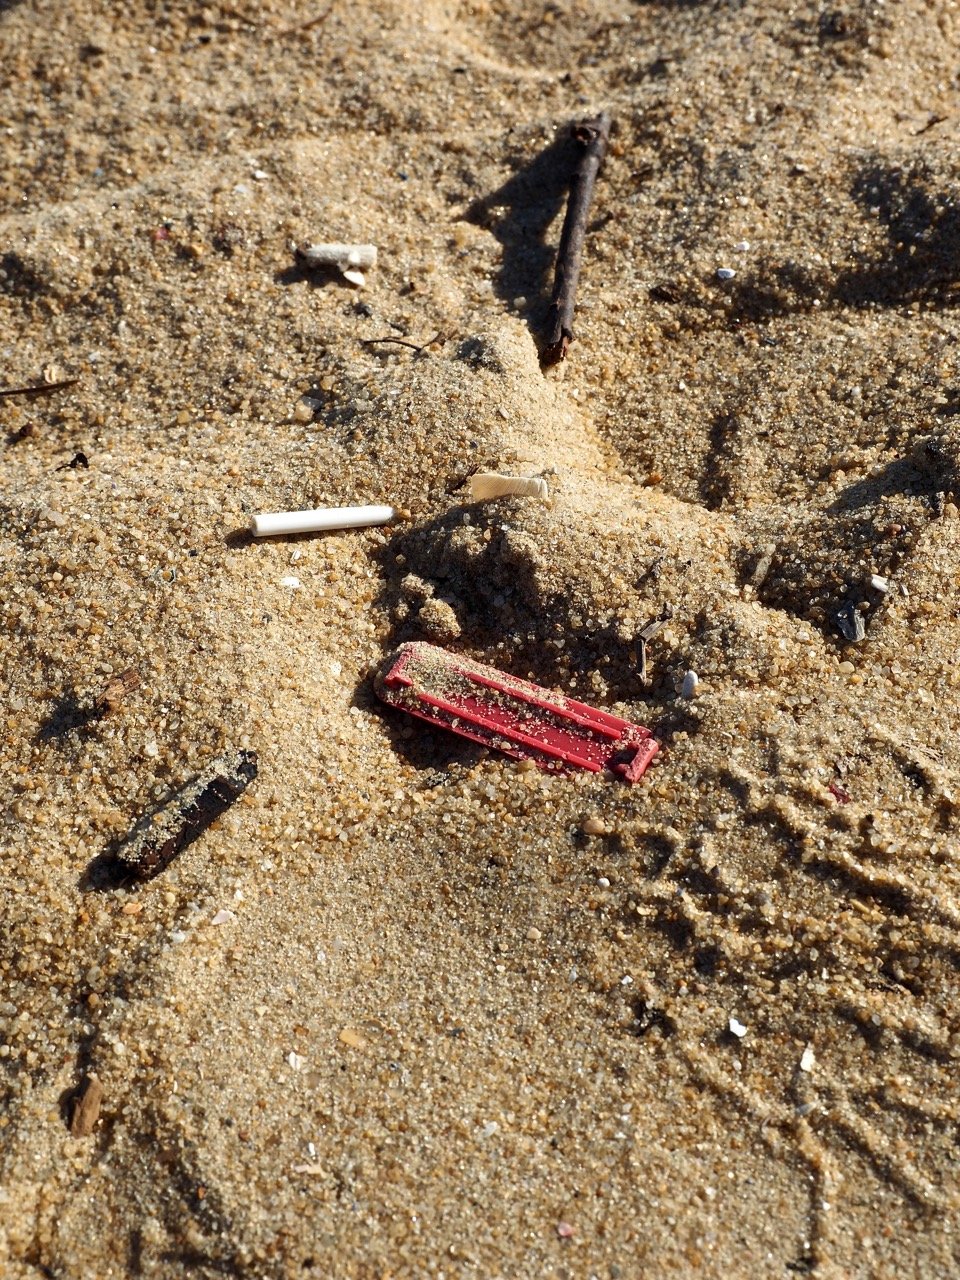 We really noticed the vast amount of plastic pollution at one of our local Melbourne beaches last weekend. Amongst the sand & shells, can you spot all the tiny flecks of plastic?